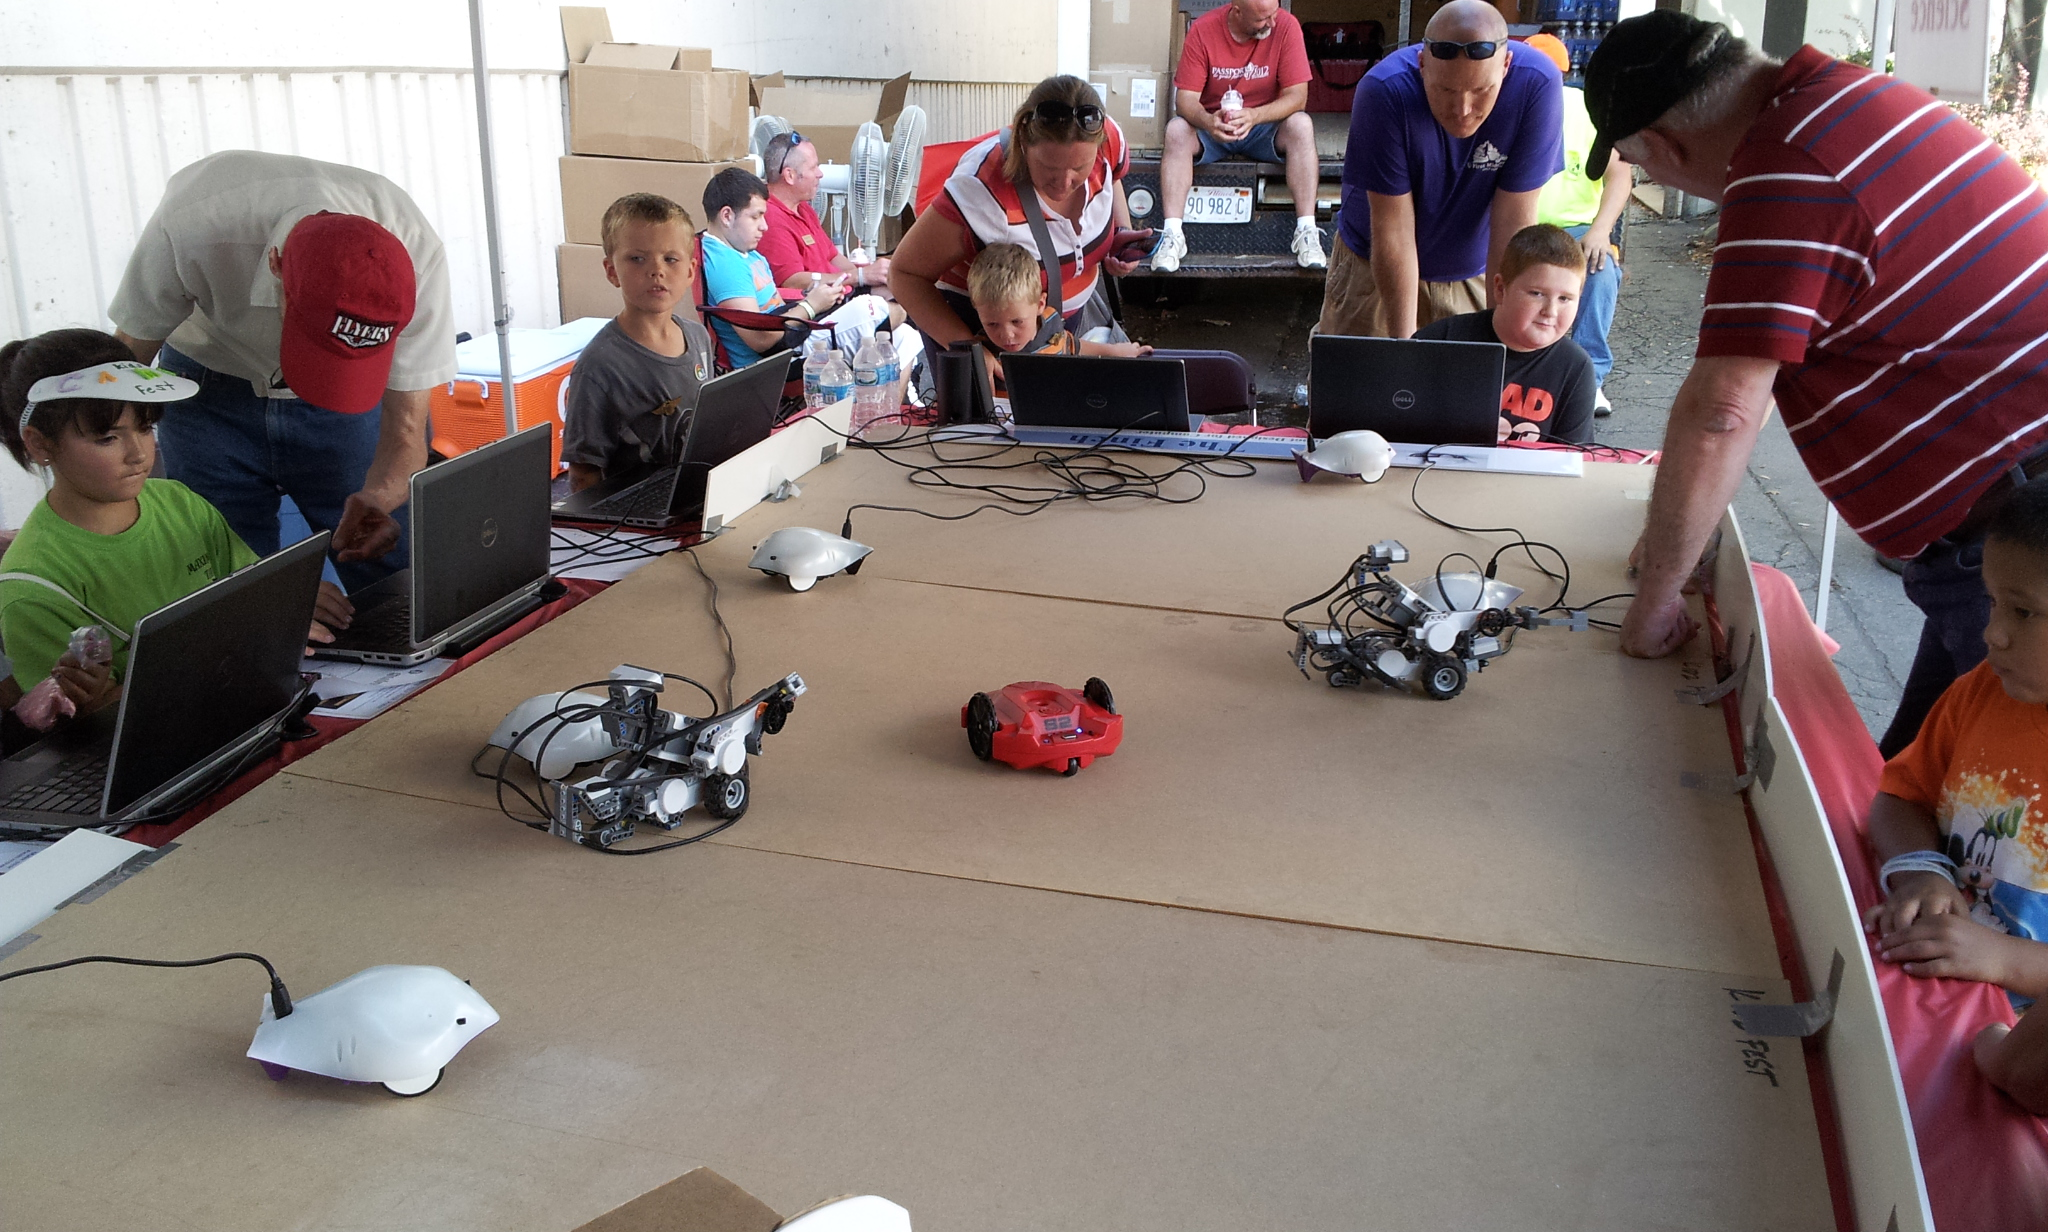 Introducing Kids to Computer Science: Lessons from Kidzfest 2013